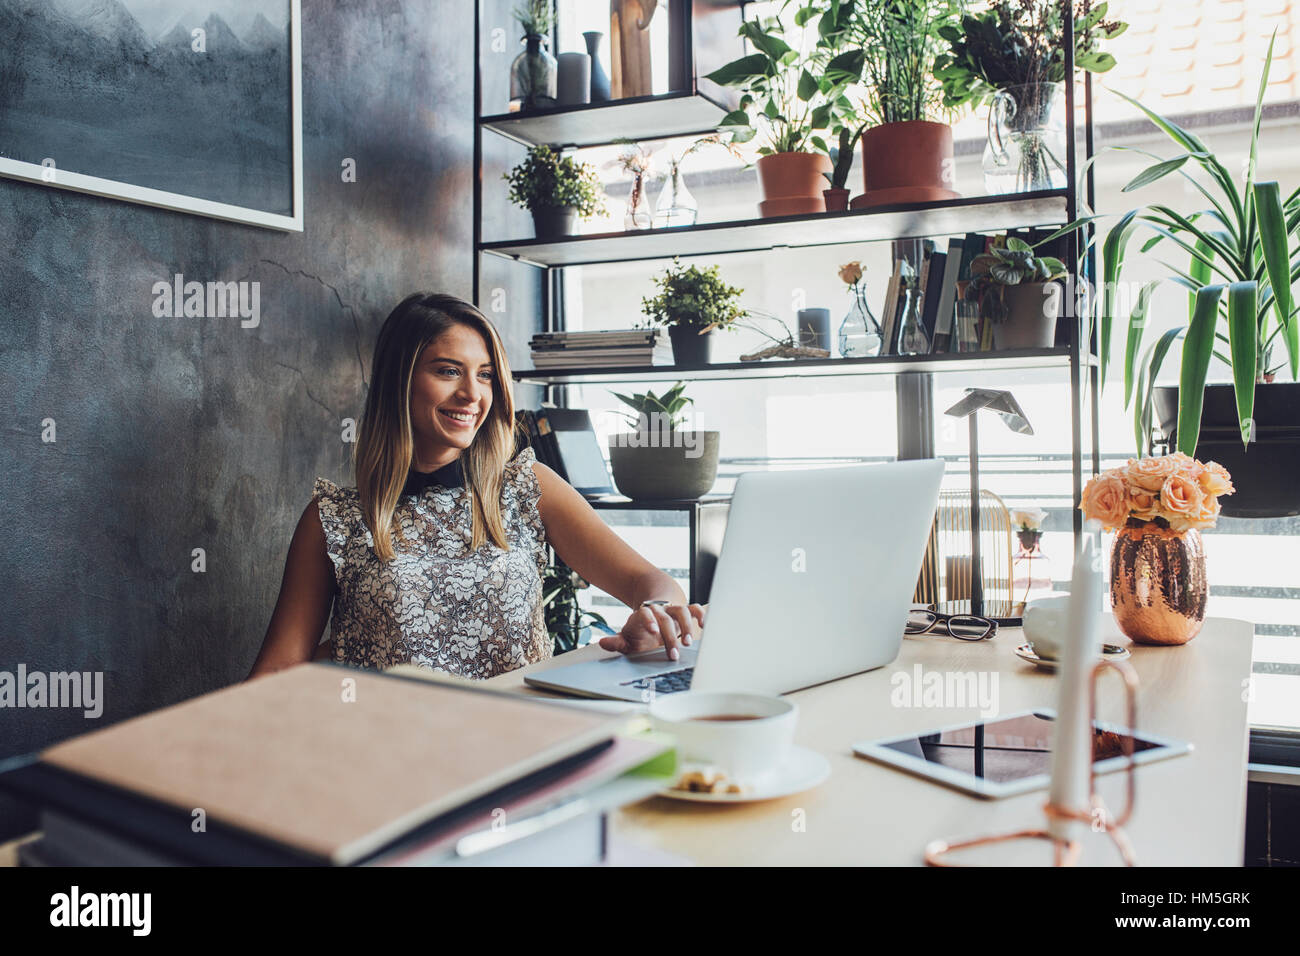 Smiling businesswoman working on laptop at home office - Stock Image